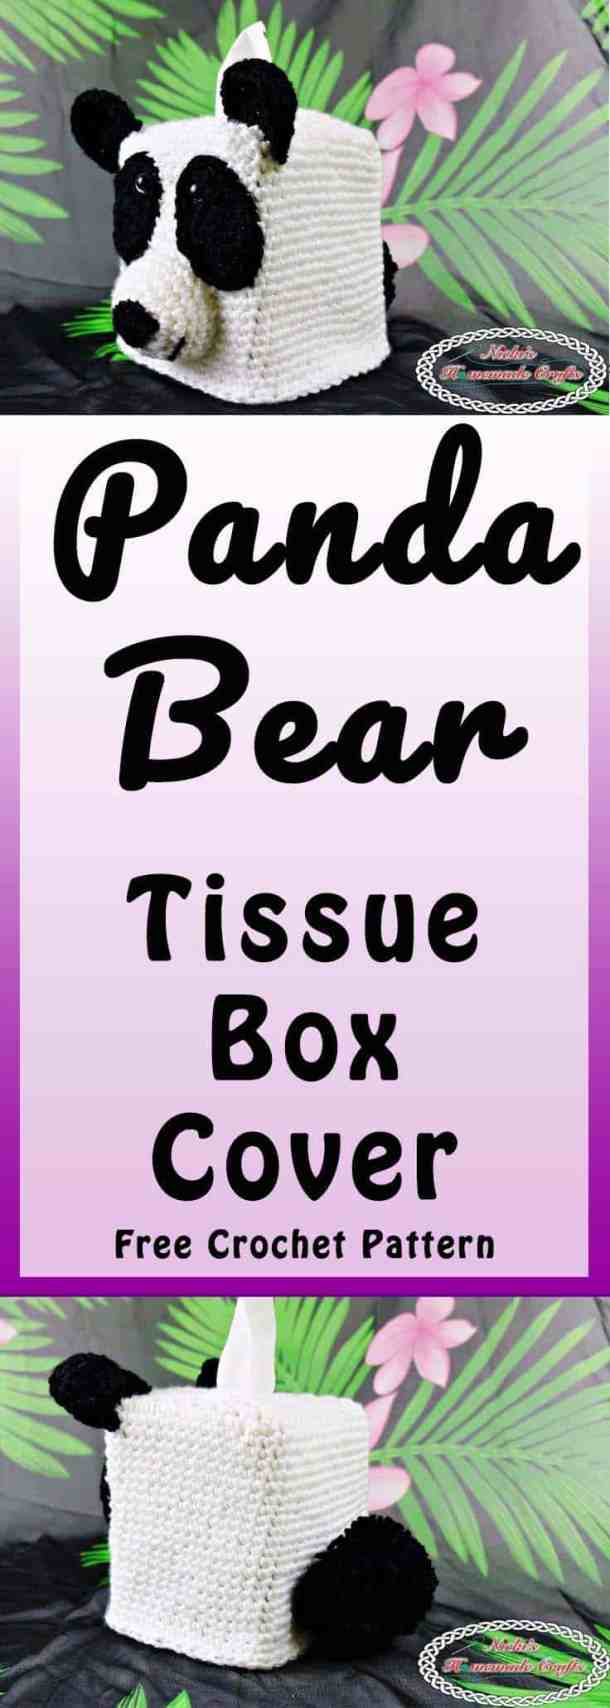 Panda Bear Tissue Box Cover which is a Free Crochet Pattern by Nicki's Homemade Crafts featuring the front, side and back of the tissue box cover